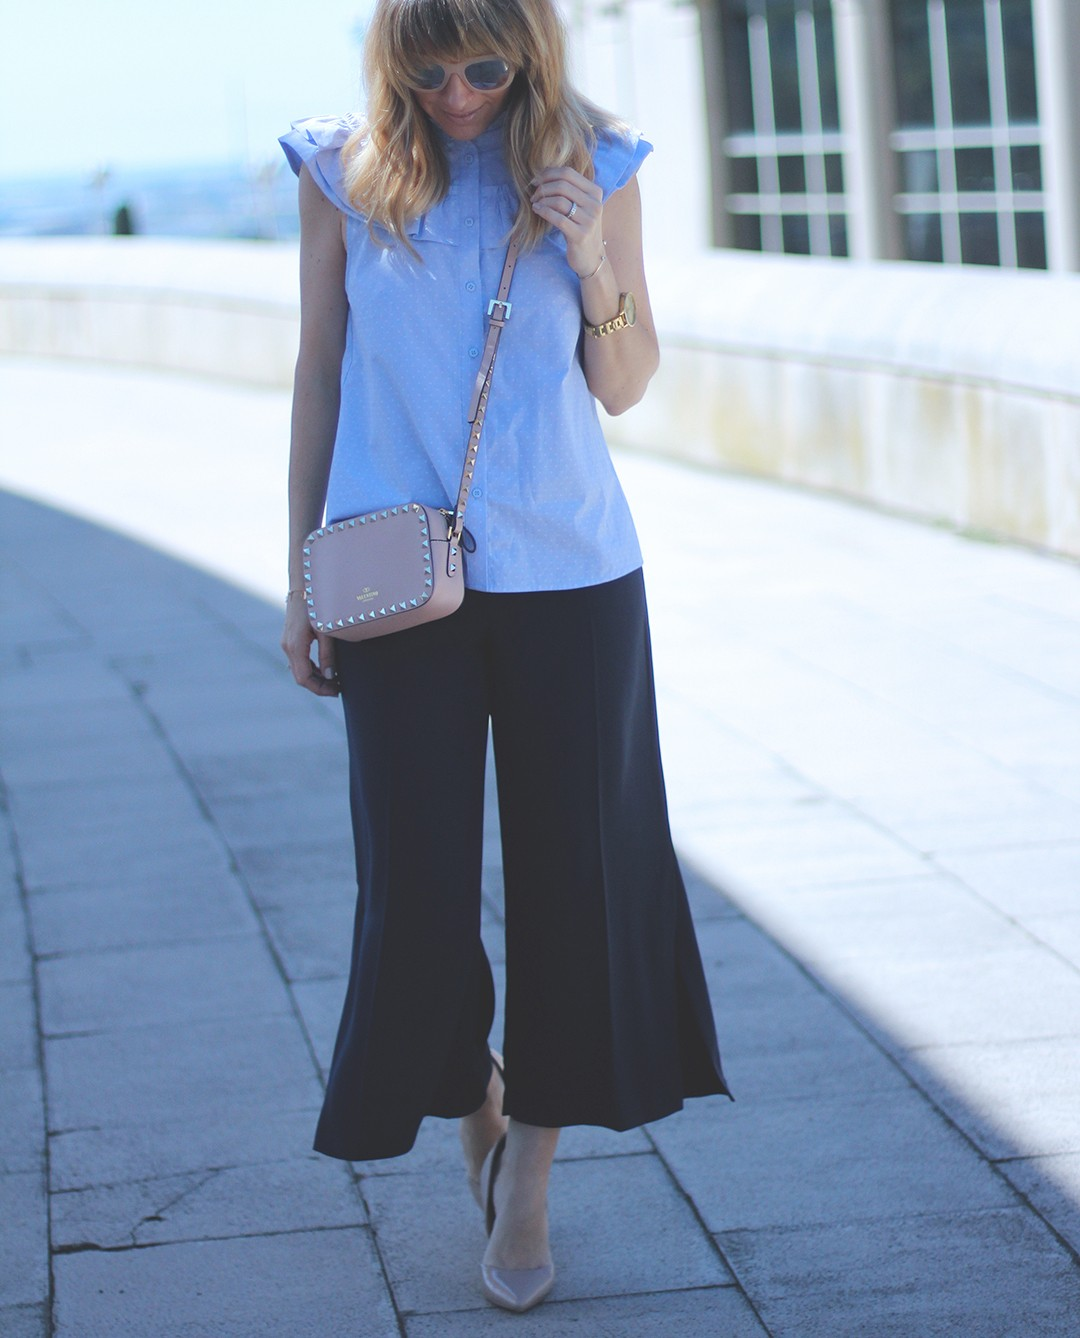 CULOTTE-PANTS-FASHION-BLOGGER-20162